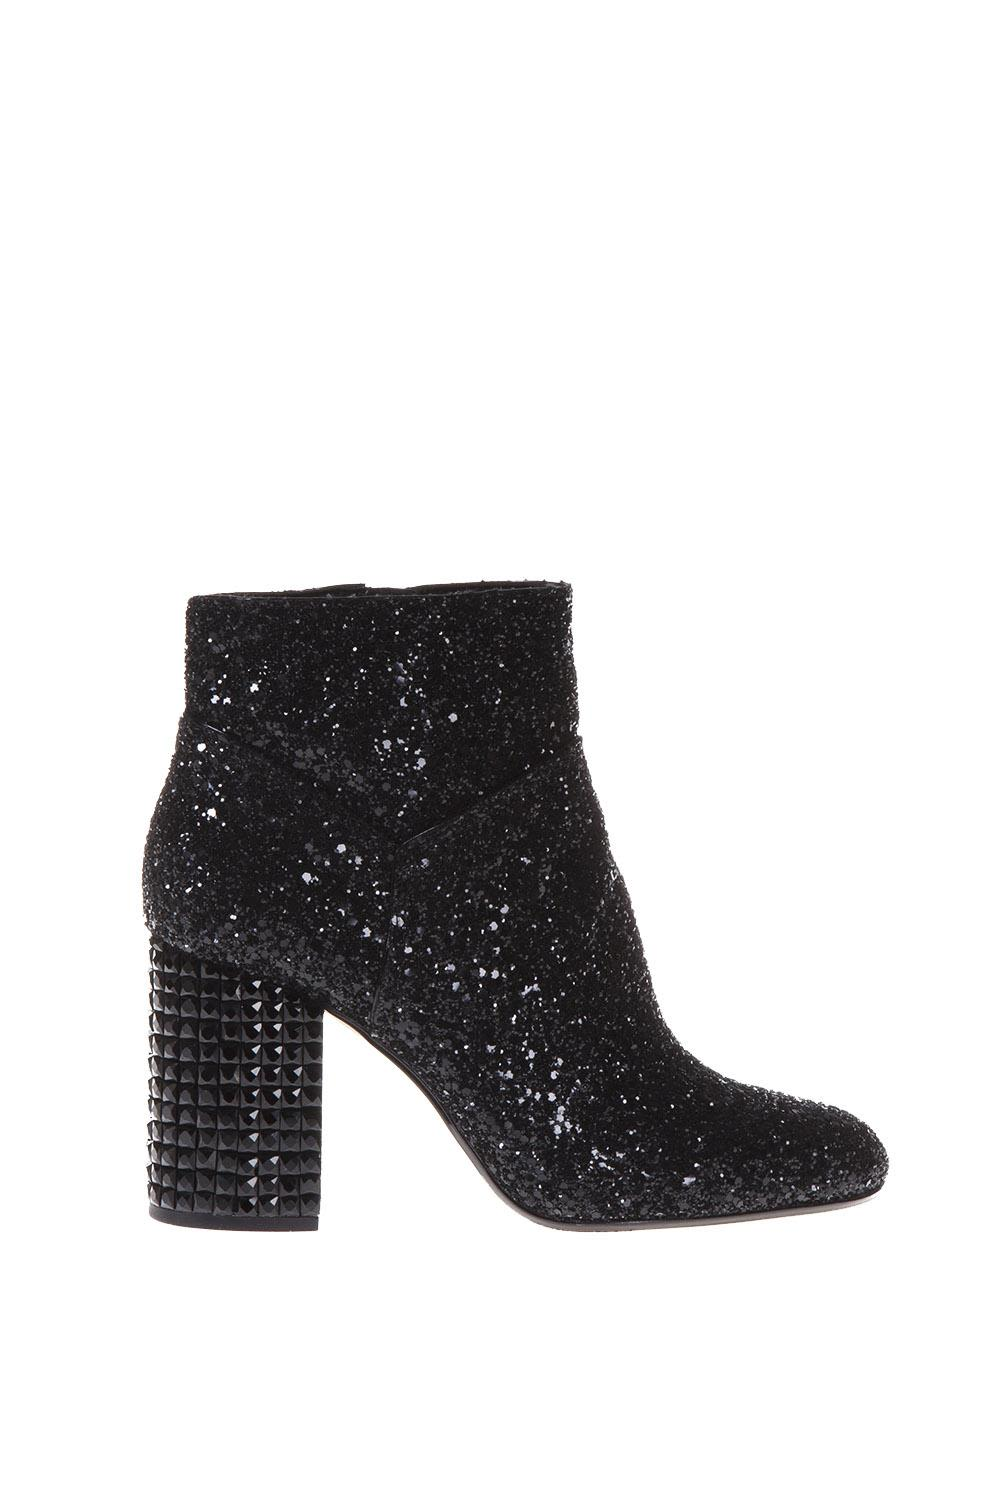 MICHAEL Michael Kors Arabella Embellished Glittered Leather Ankle Boots